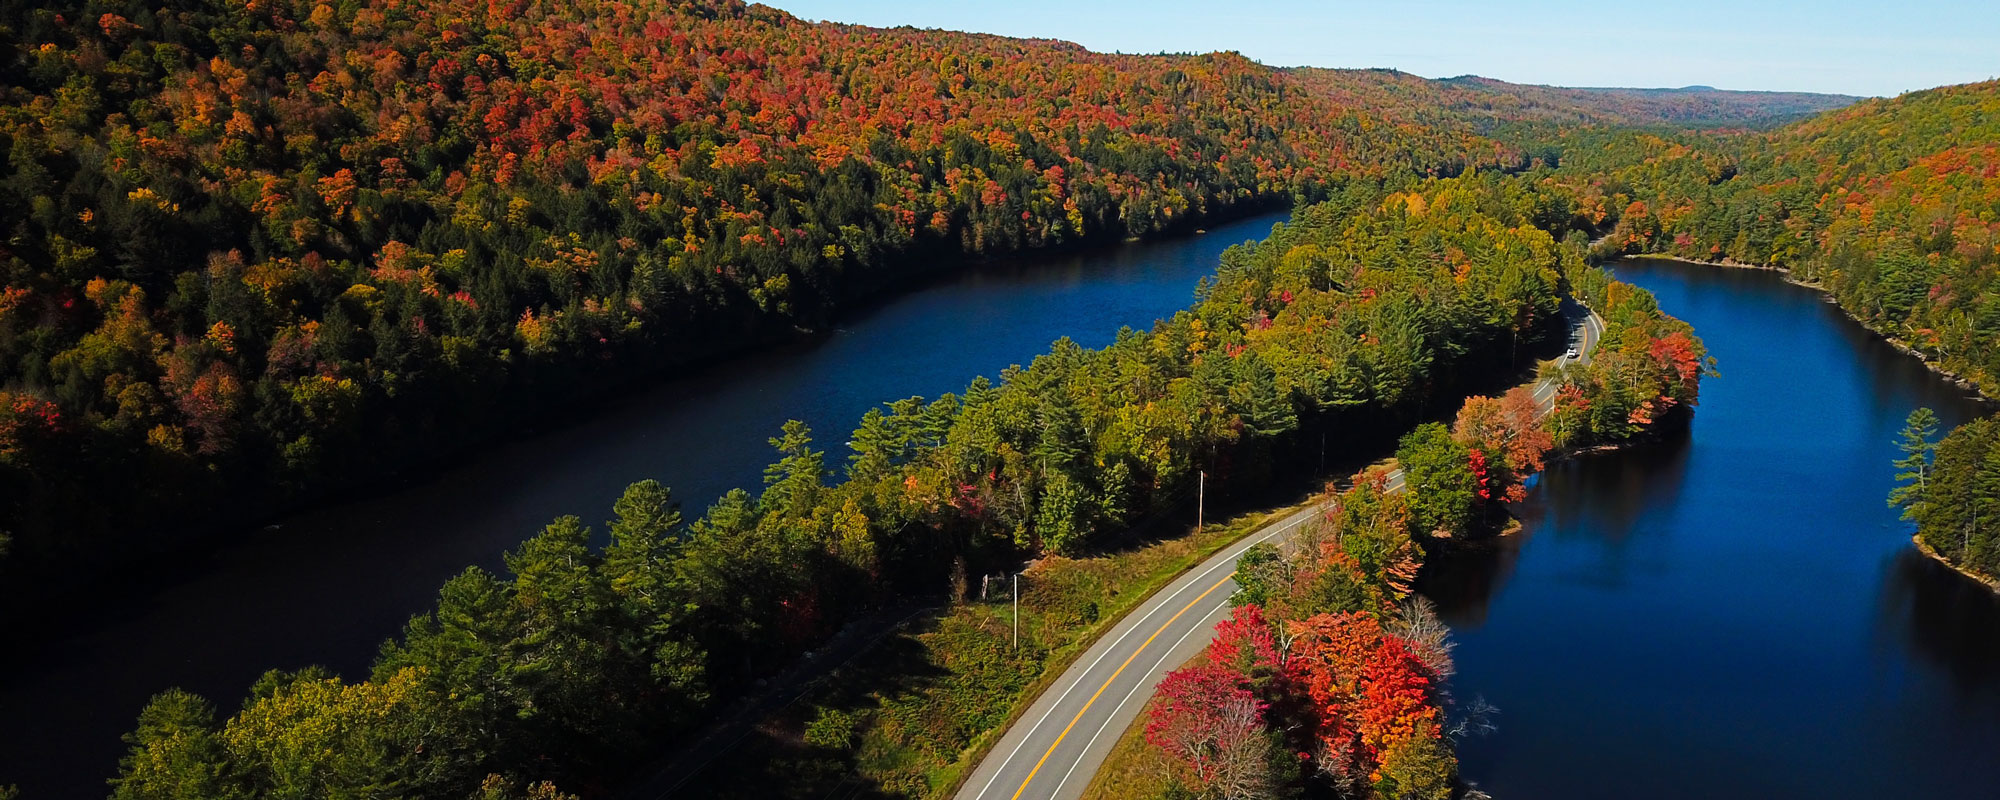 Scenic Drives in Maine Fall Foliage